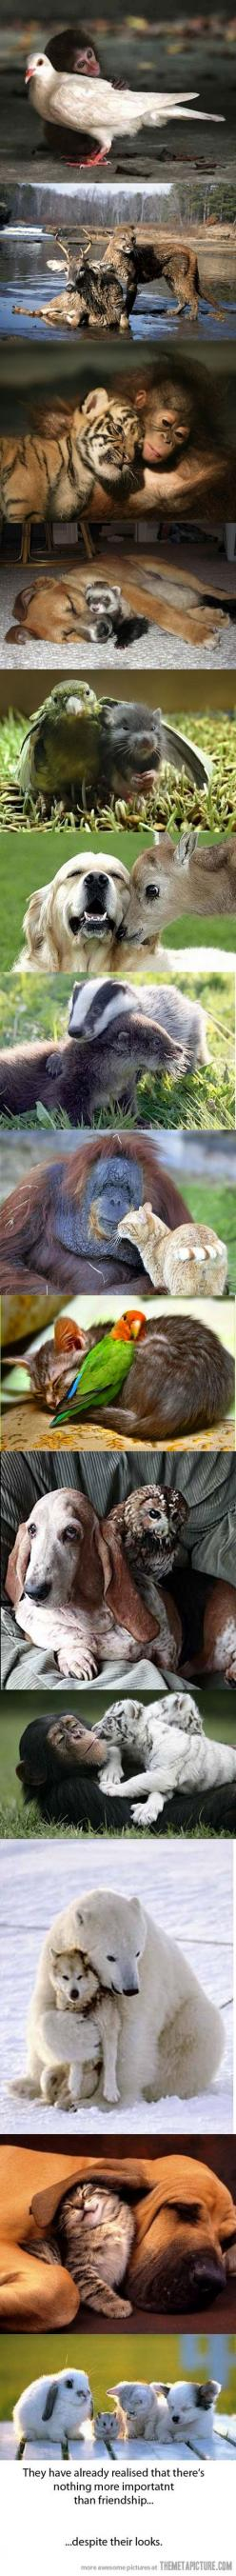 If animals can grow and learn with another, despite differences in appearance, then why can't humans do it?: True Friendship, Unexpected Friendship, Best Friends, Sweet, Odd Animal Couple, Odd Couple, Unlikely Animal Friend, Animal Friendships, Odd An